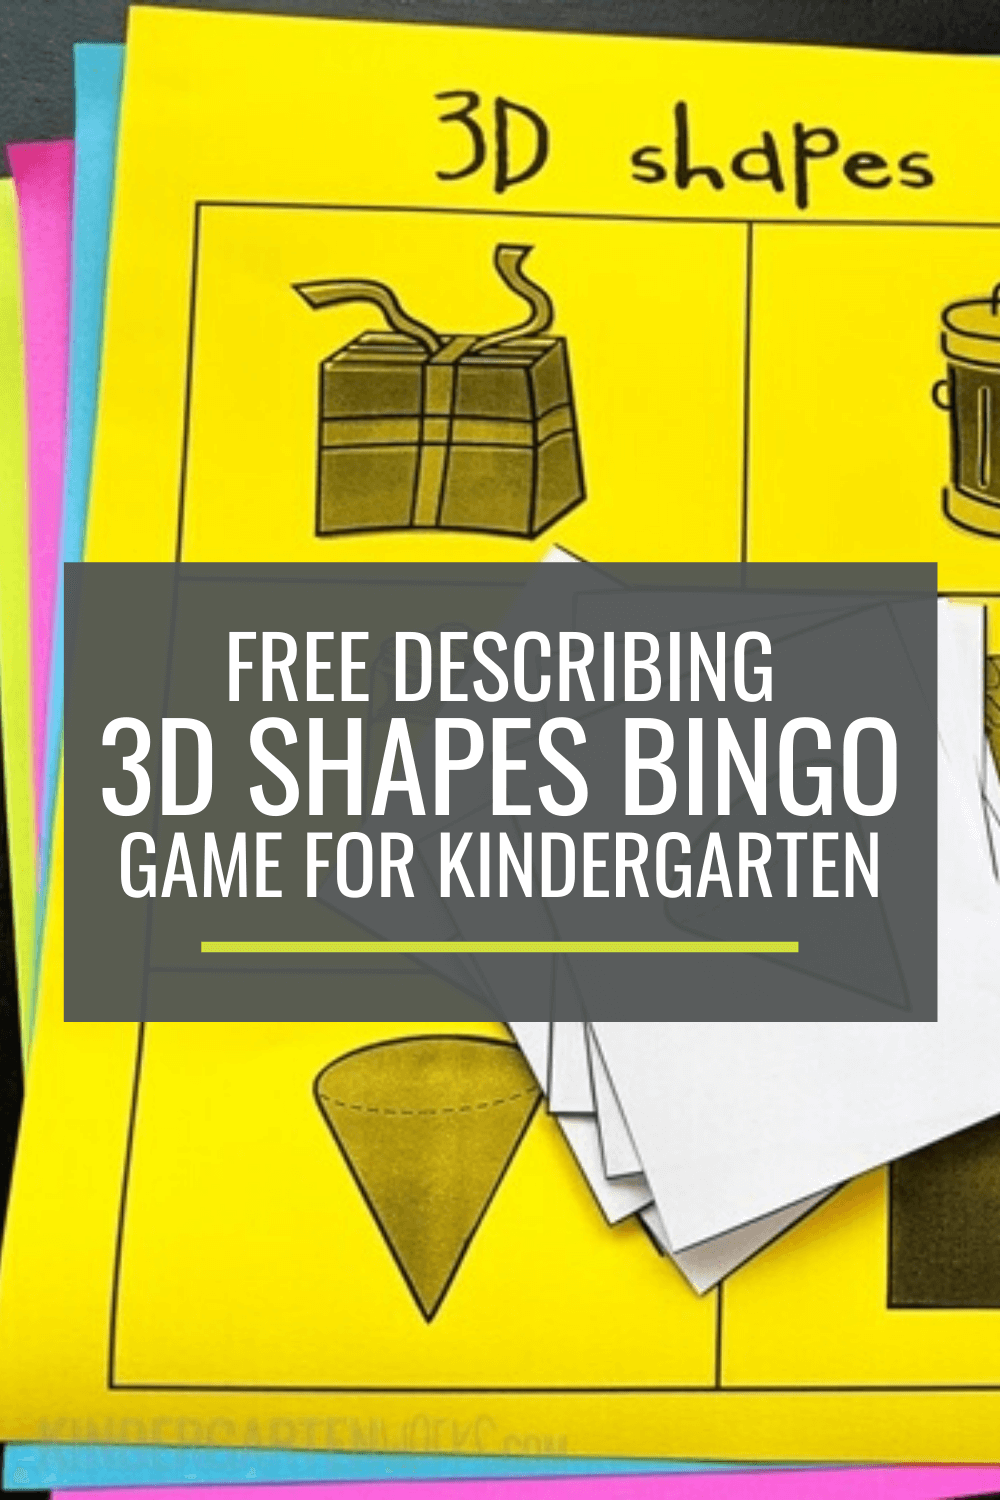 Free Describing 3D Shapes Bingo Game for Kindergarten